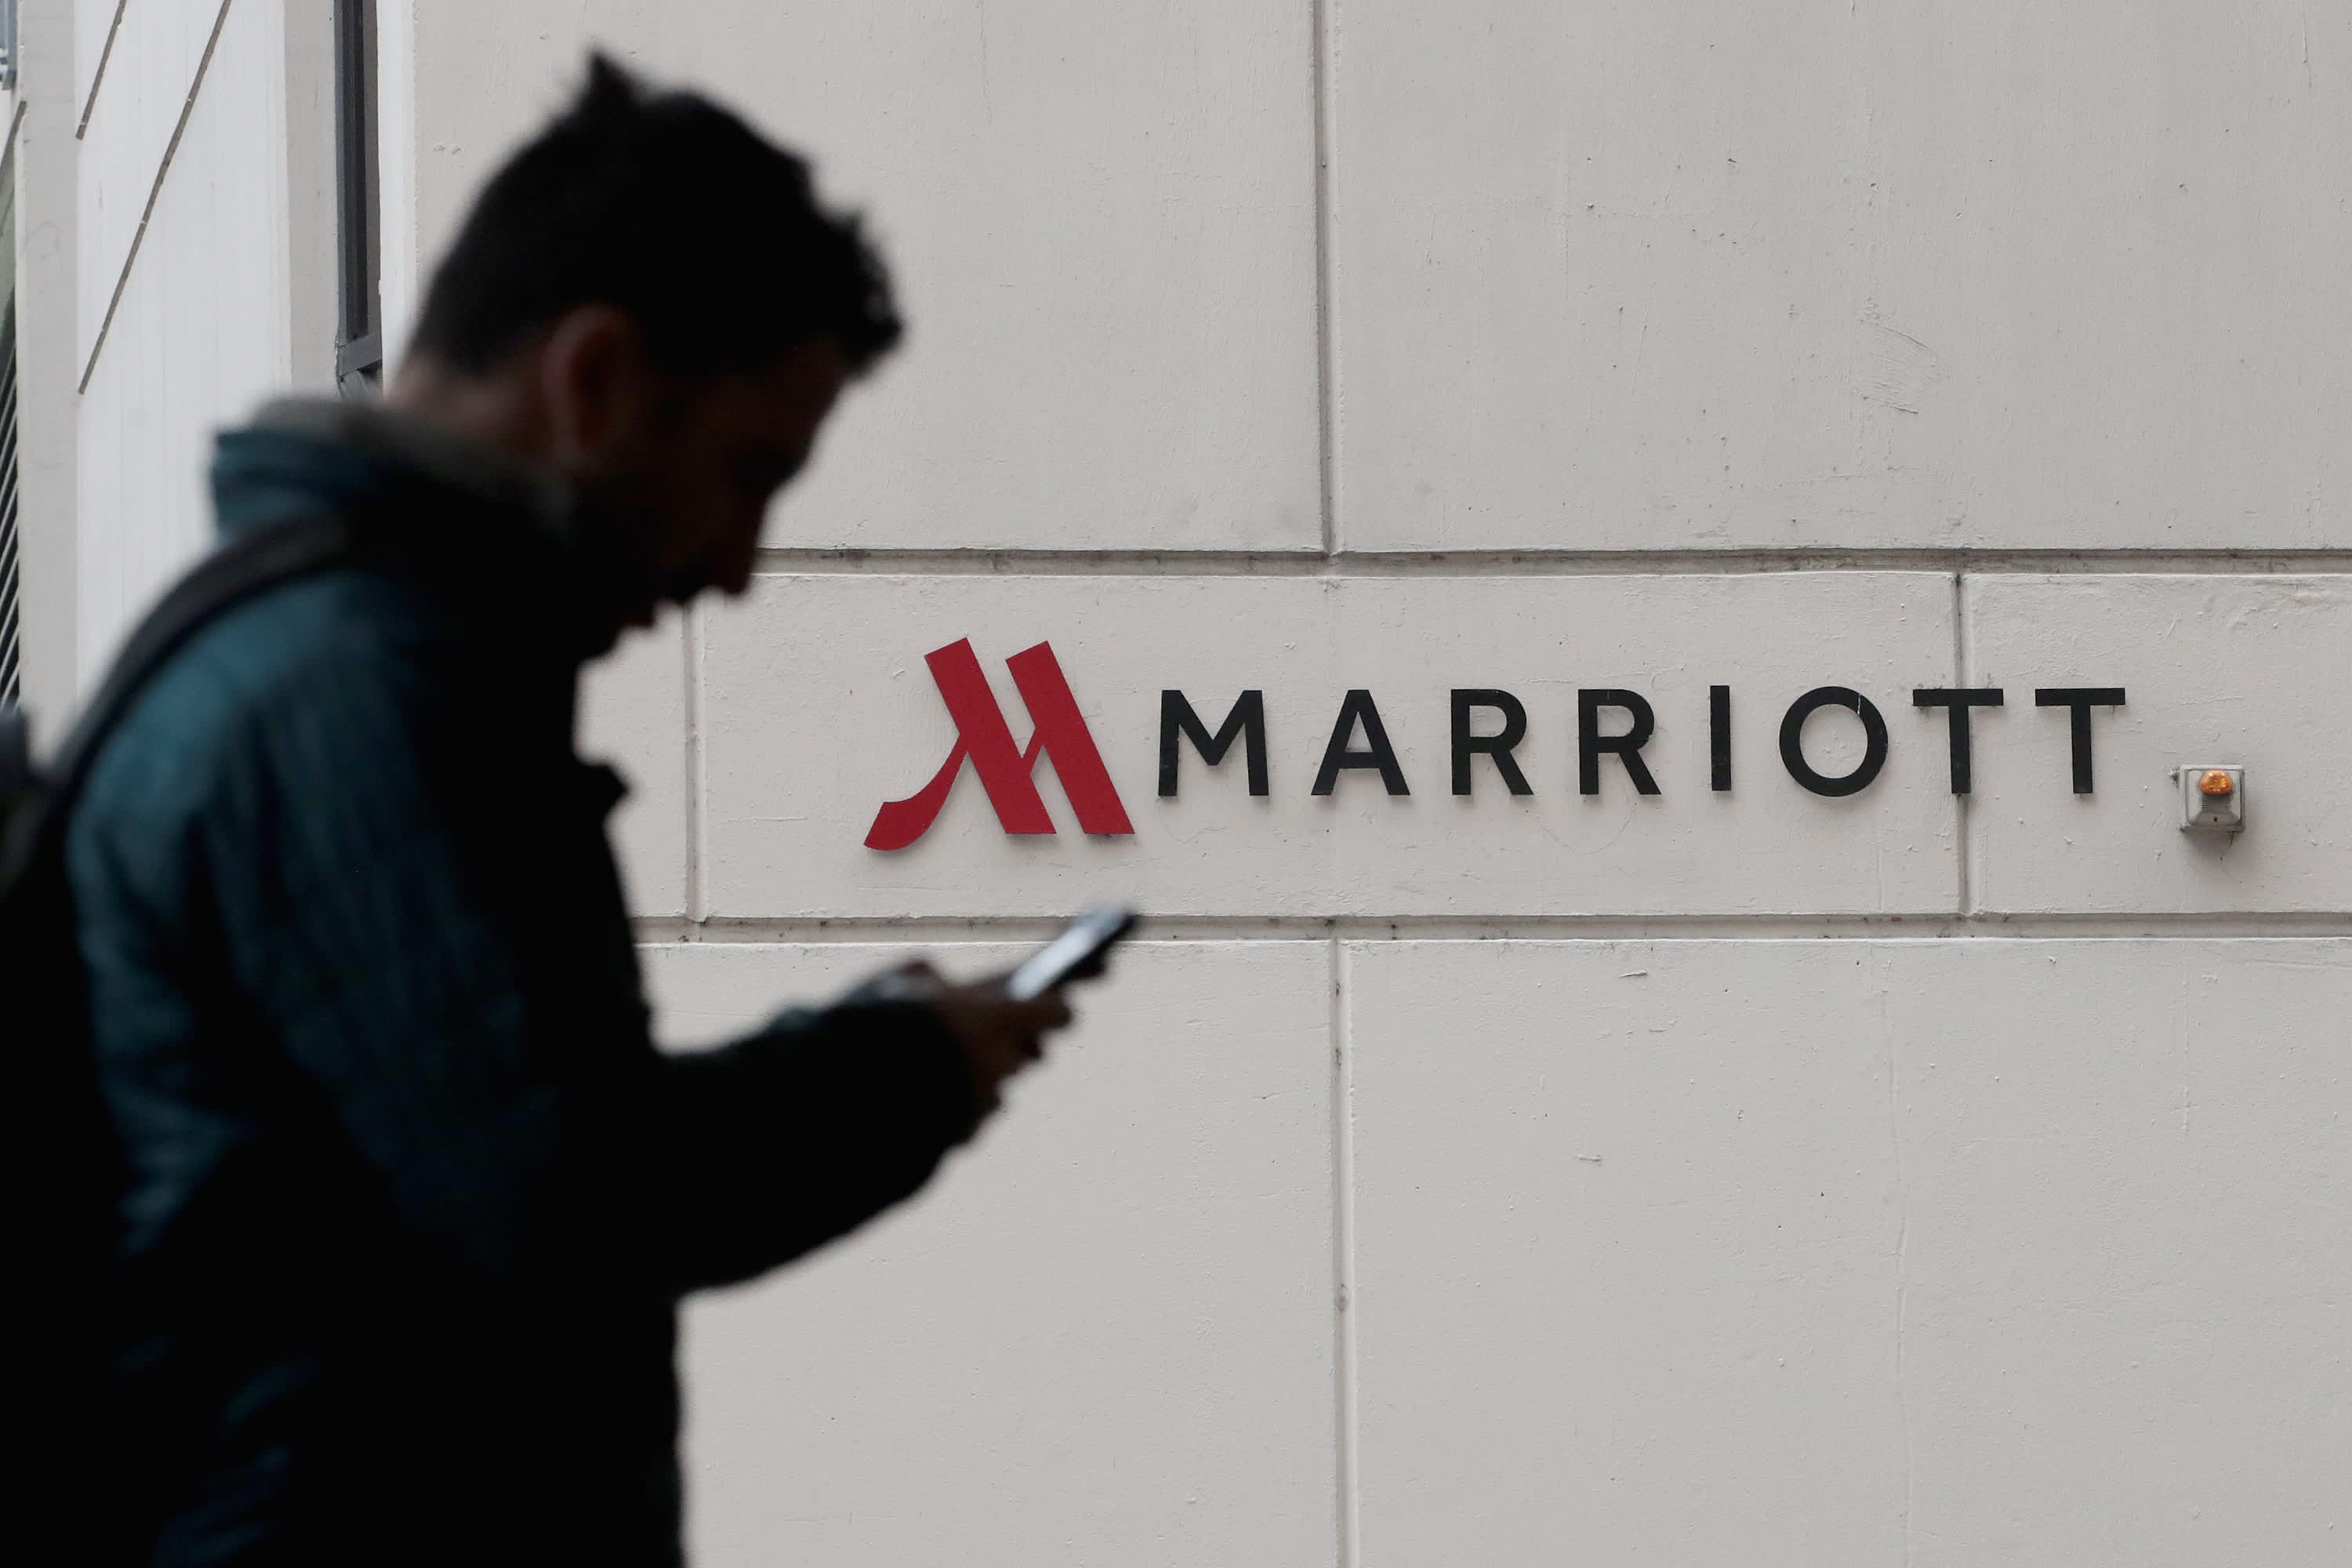 Clues in Marriott hack are said to implicate China